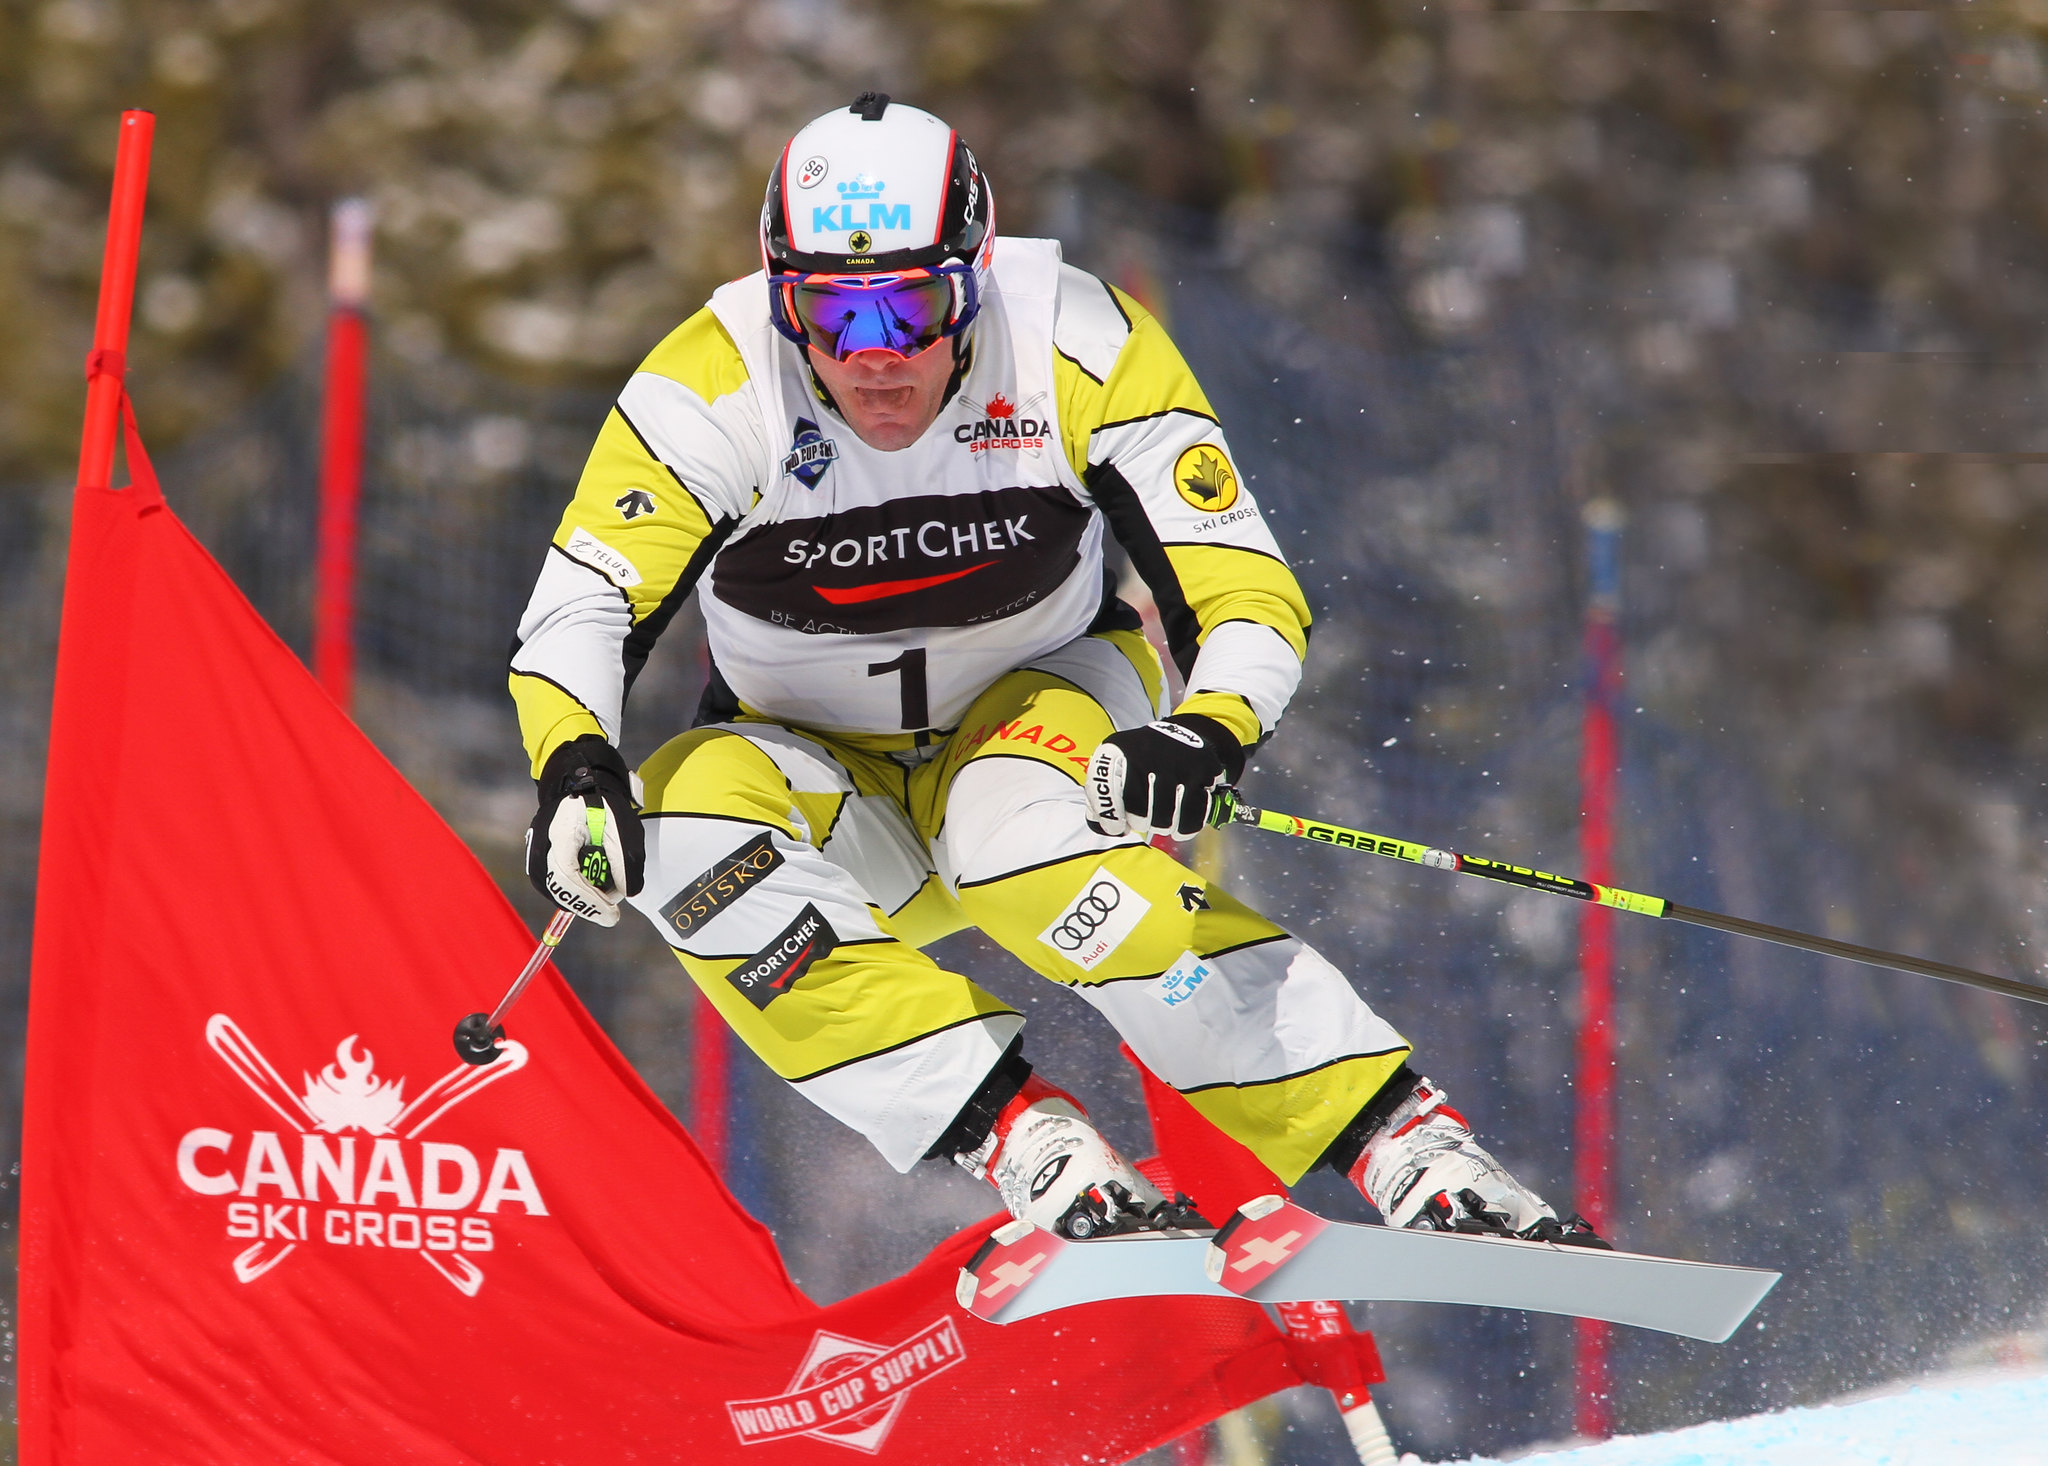 Chris Del Bosco  in action during the Sport Chek Ski Cross Canadian Championships.